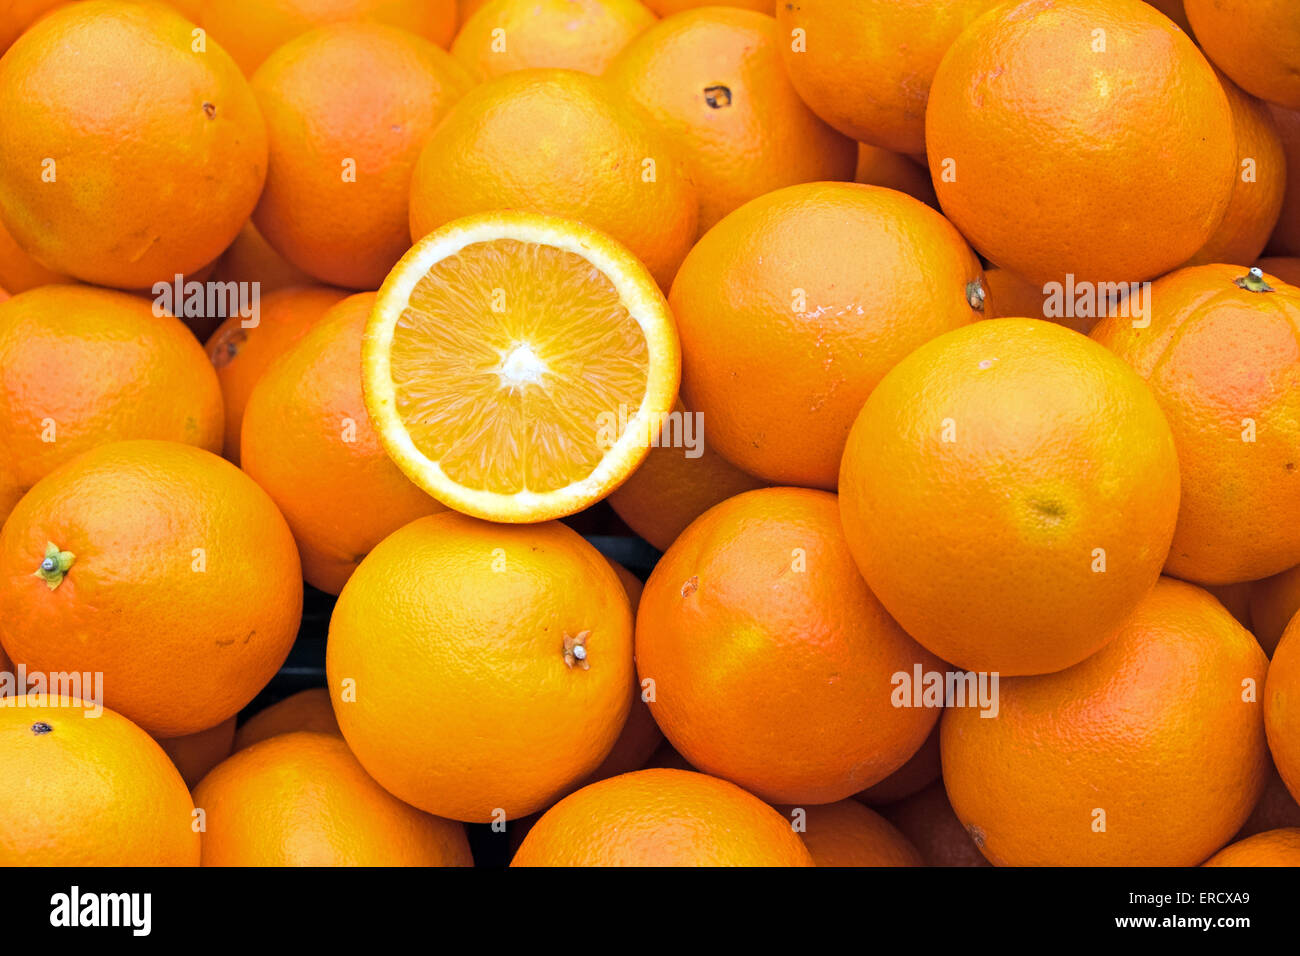 Ripe oranges for sale on a market - Stock Image